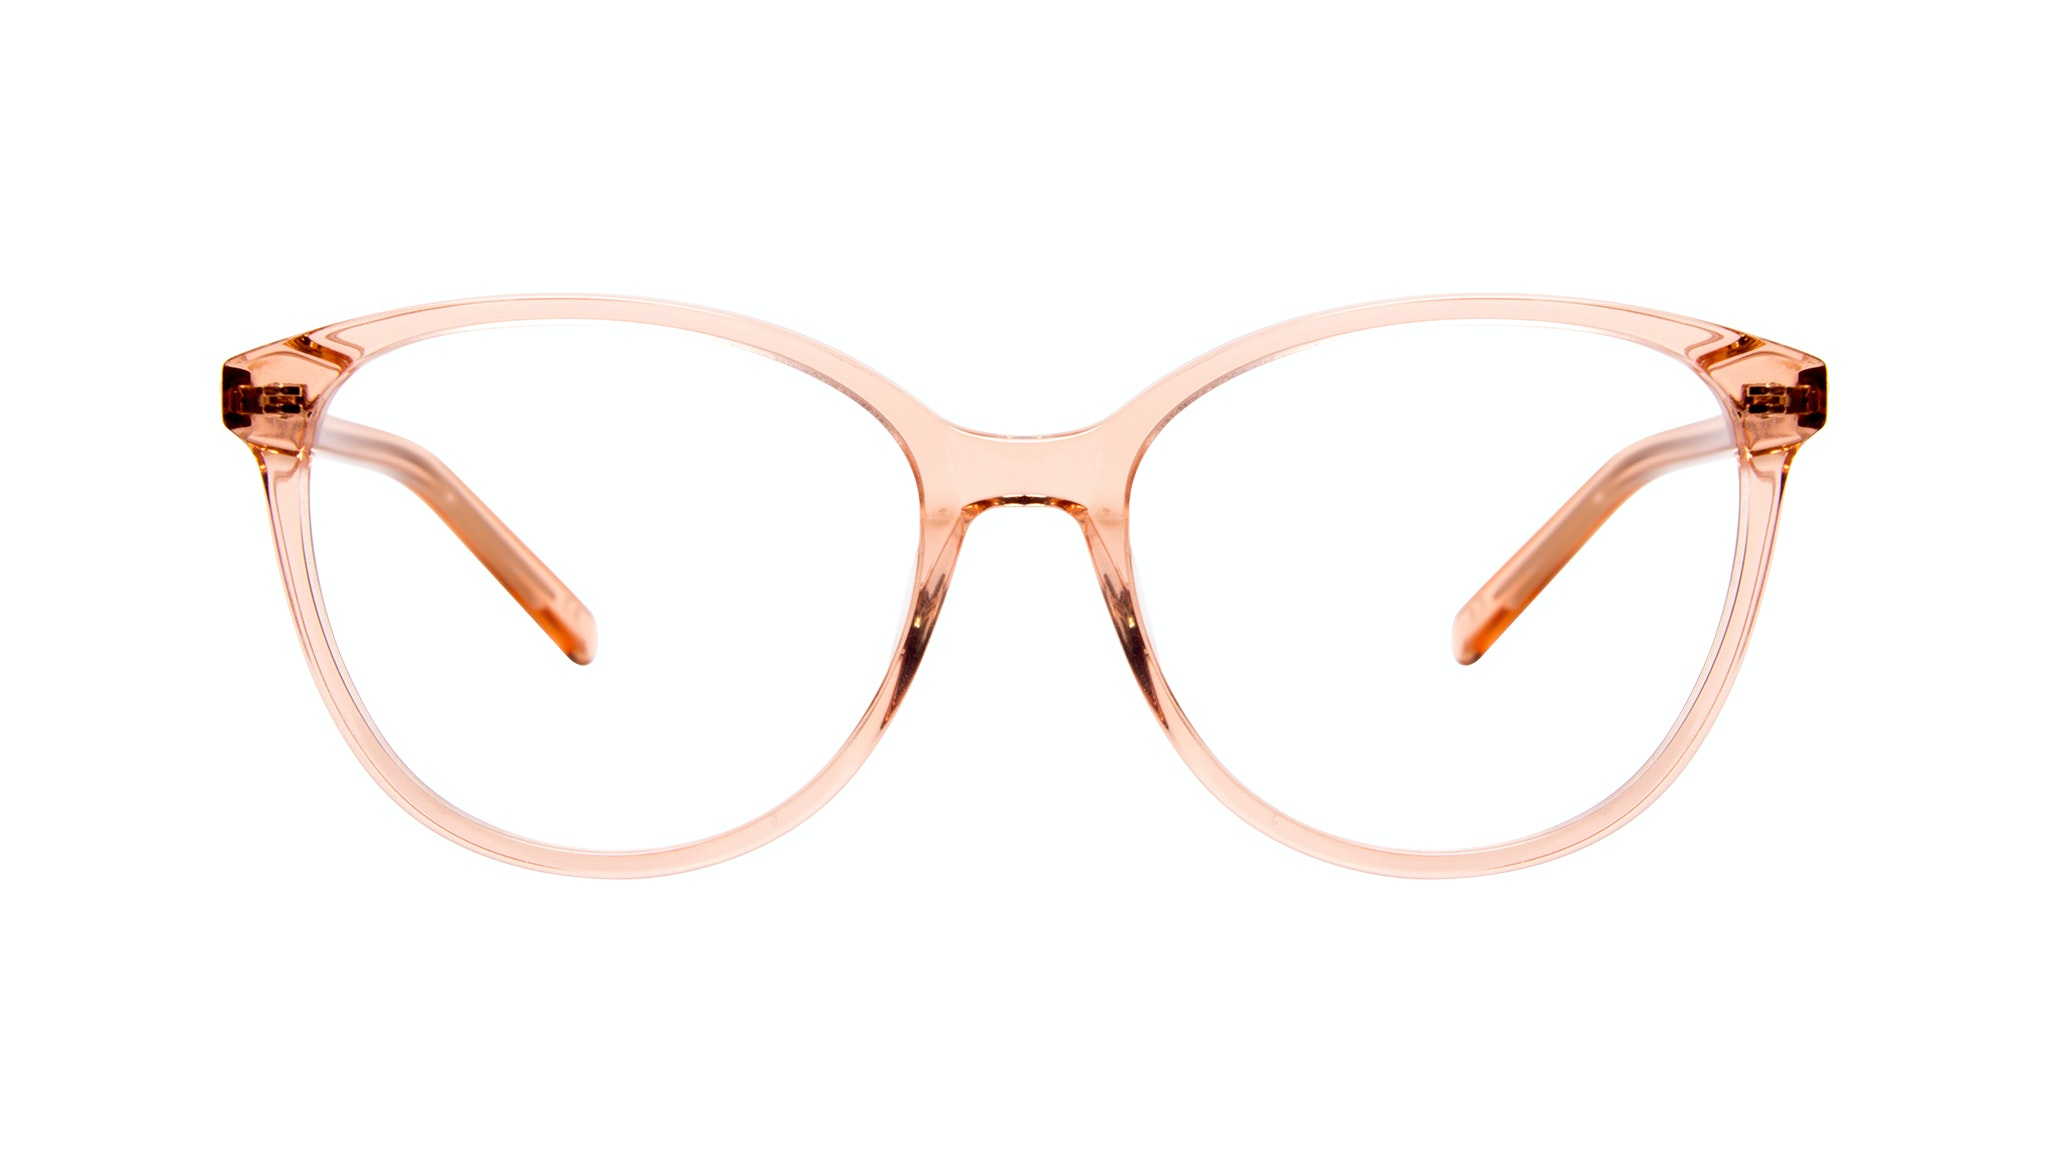 Affordable Fashion Glasses Cat Eye Round Eyeglasses Women Imagine Peach